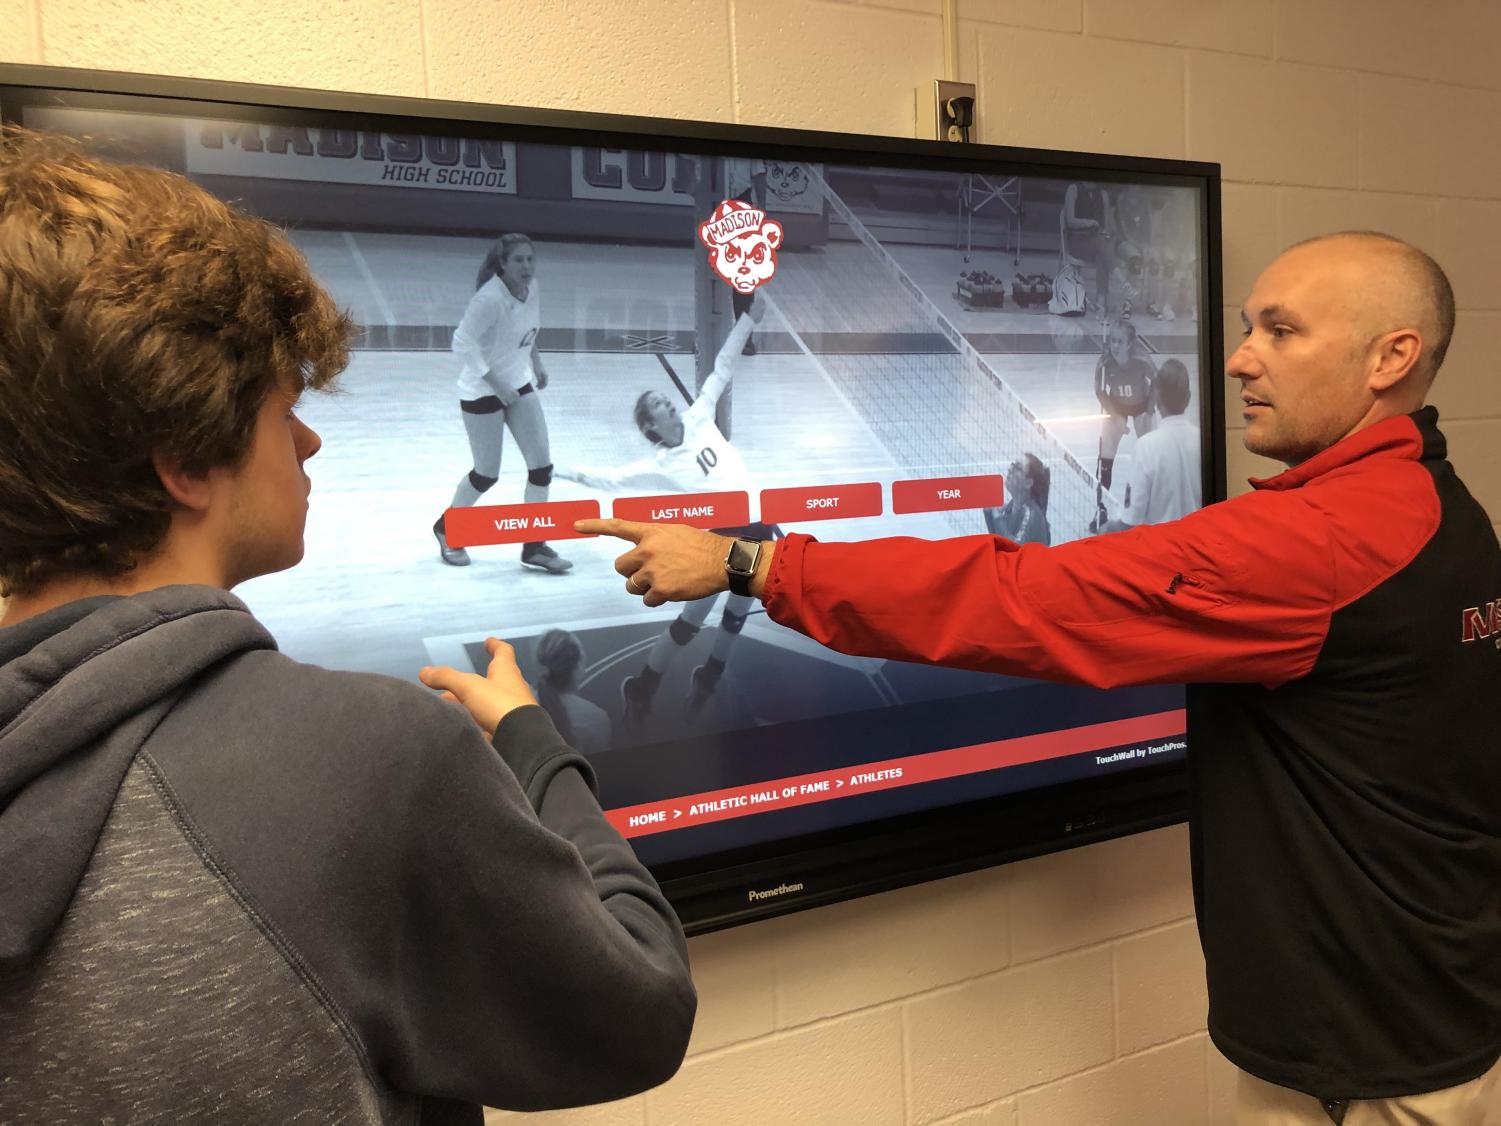 MCHS Athletic Director Joe Bronkella shows a student the features of the new digital board for MCHS Hall of Fame.